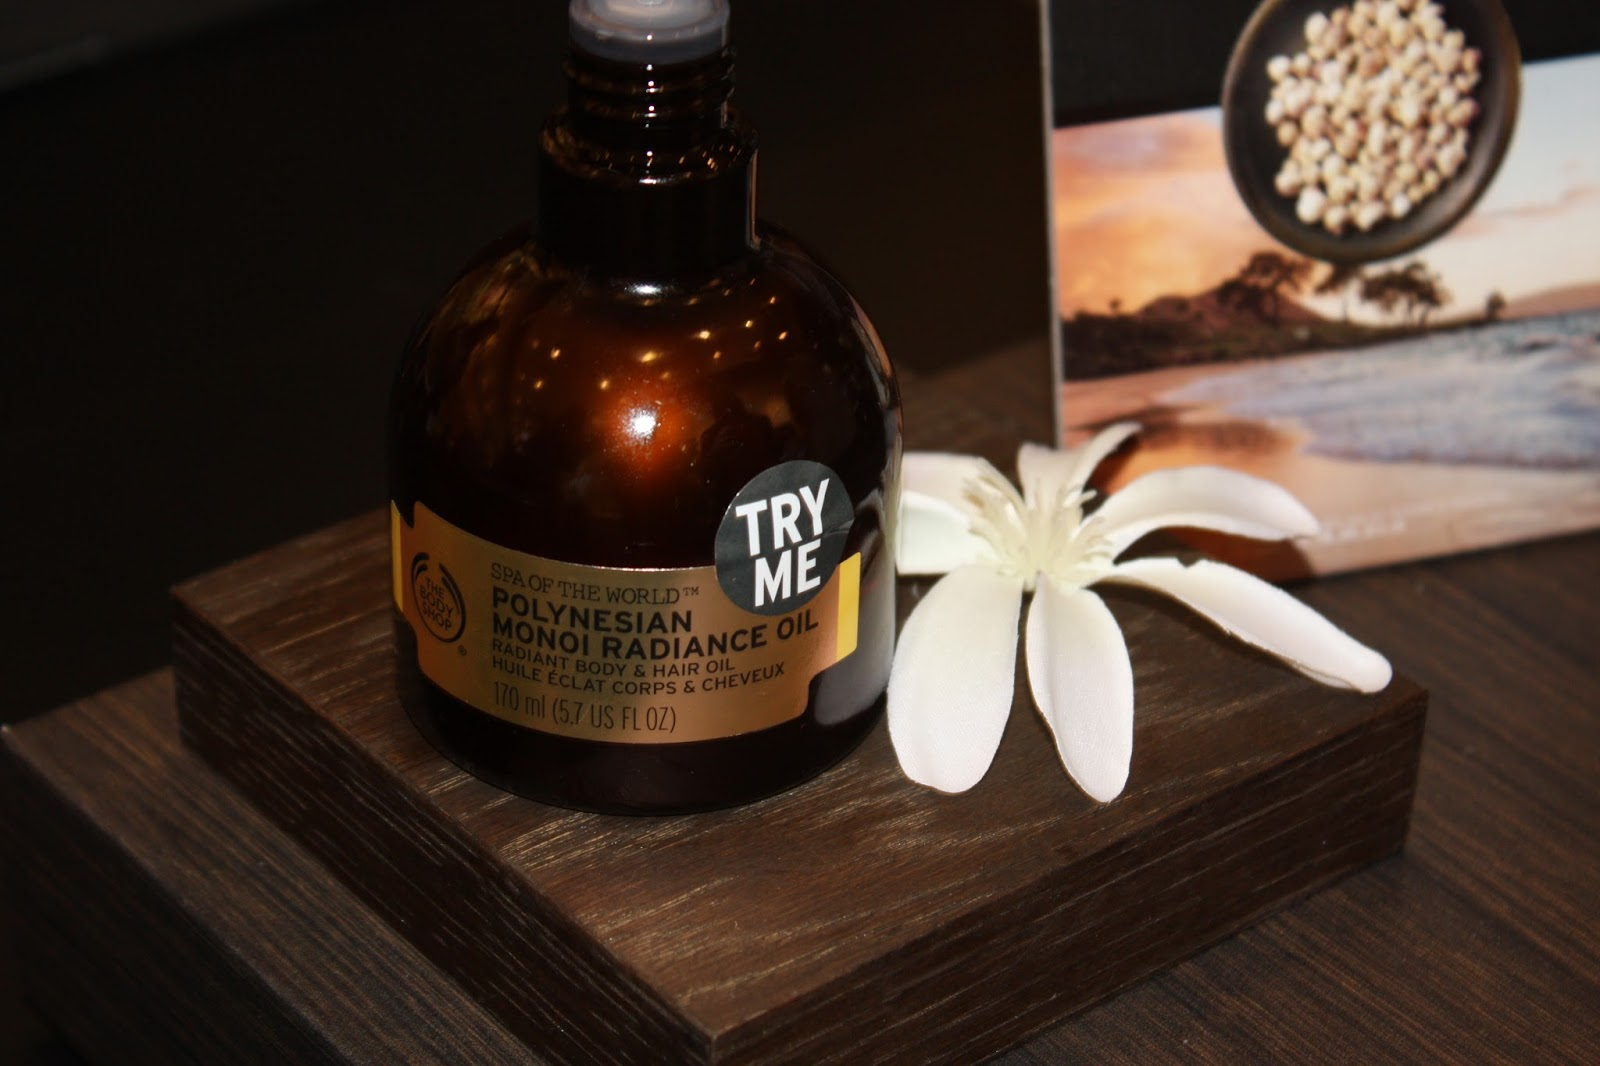 The Body Shop Southampton Spa Of The World Event Polynesian Monoi Radiance Oil